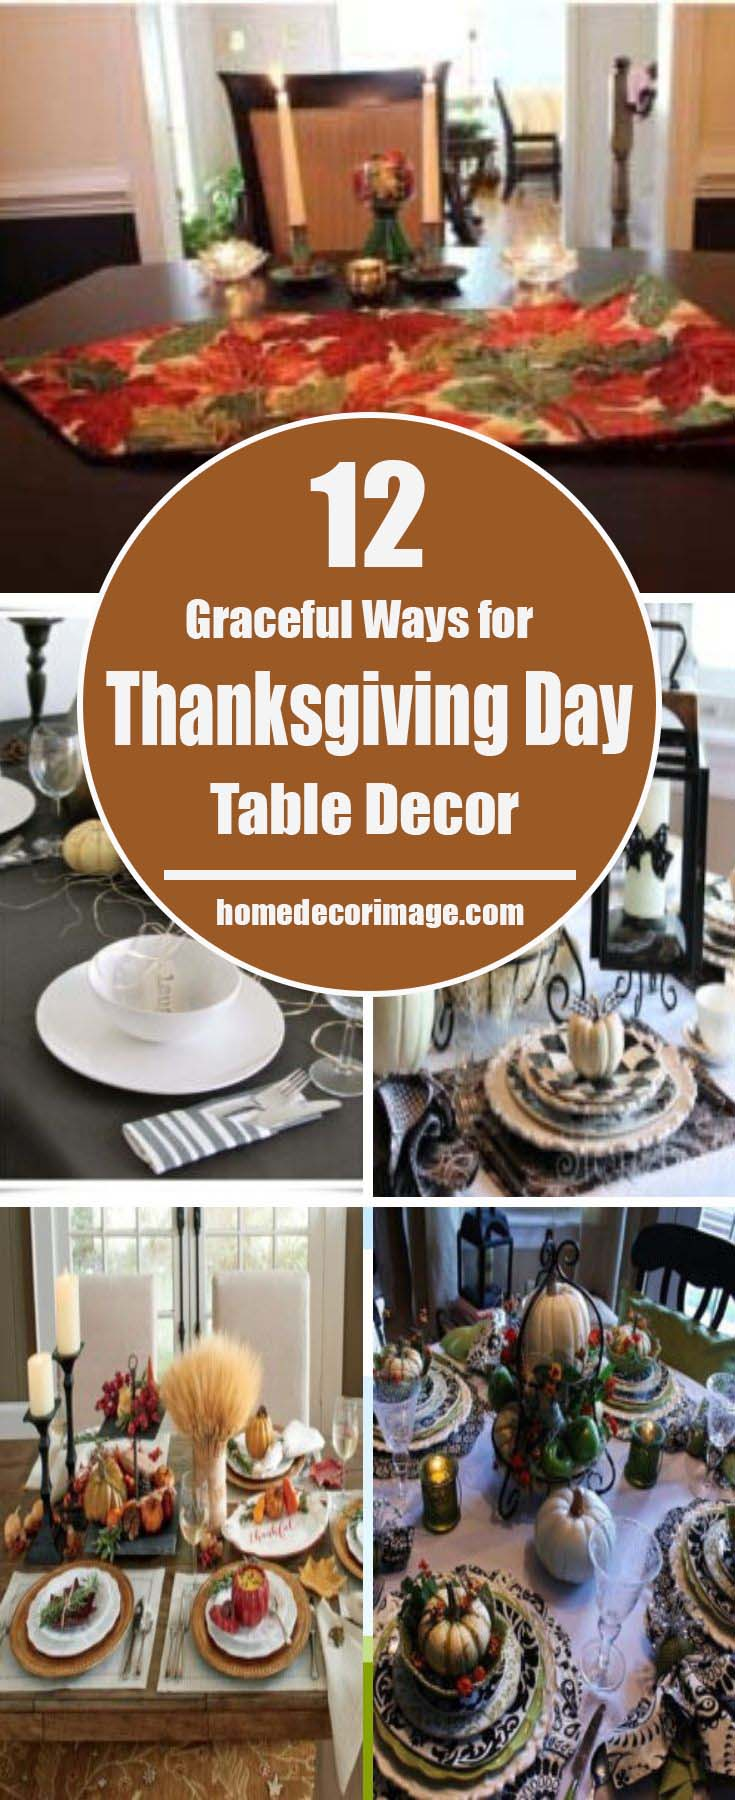 Celebrate the Thanksgiving Day by creating a fairy decoration on the table that would elicit applauses. En route to exquisite and graceful ideas! #Thanksgiving Day #table #decor #homedecorimage